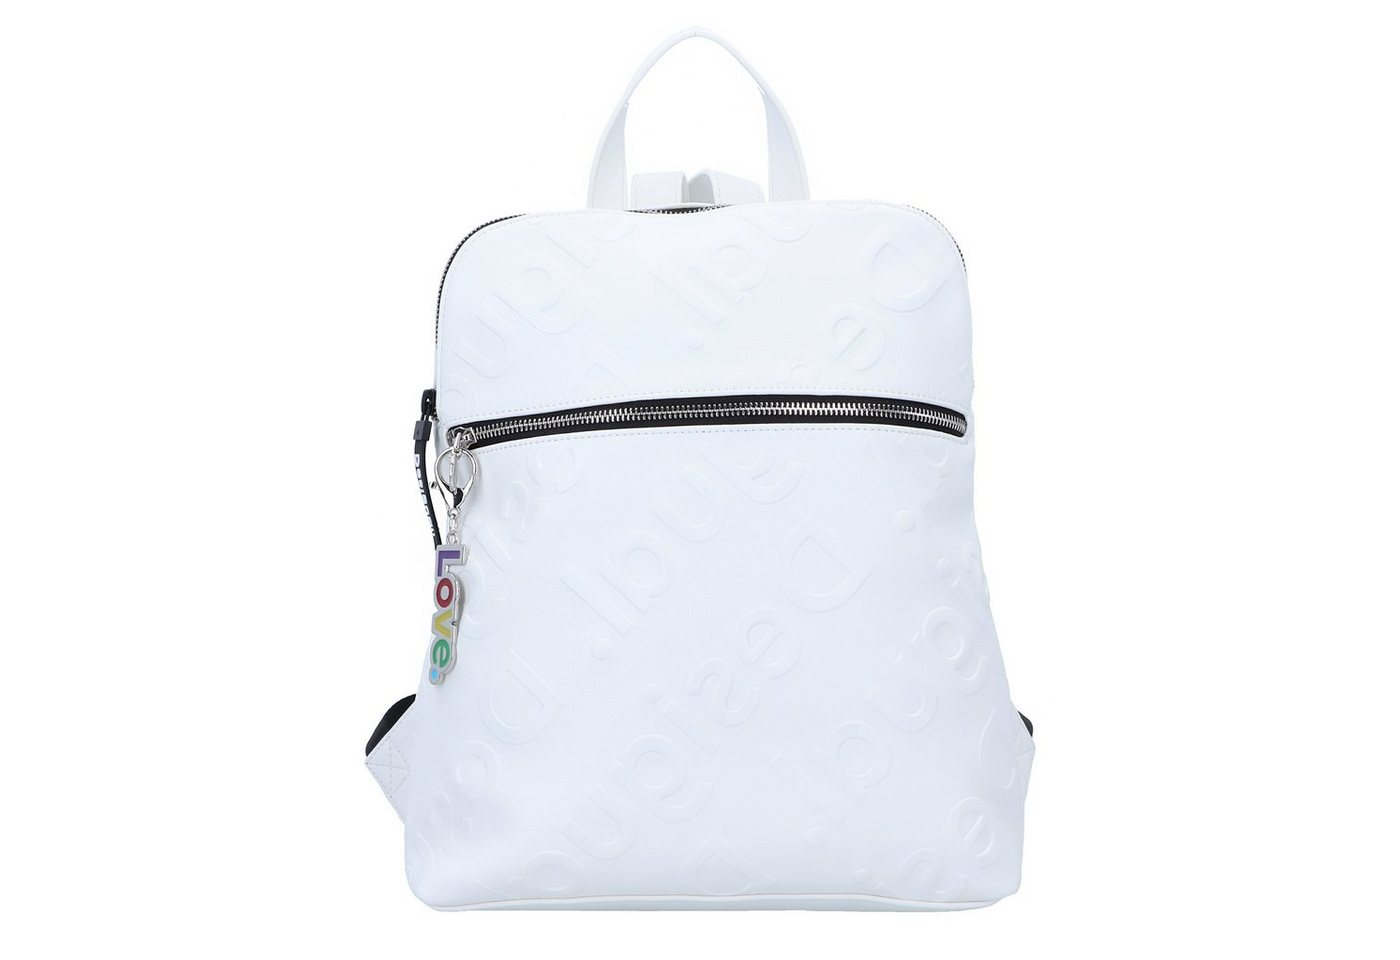 desigual -  New Colorama Nanaimo City Rucksack 35 cm